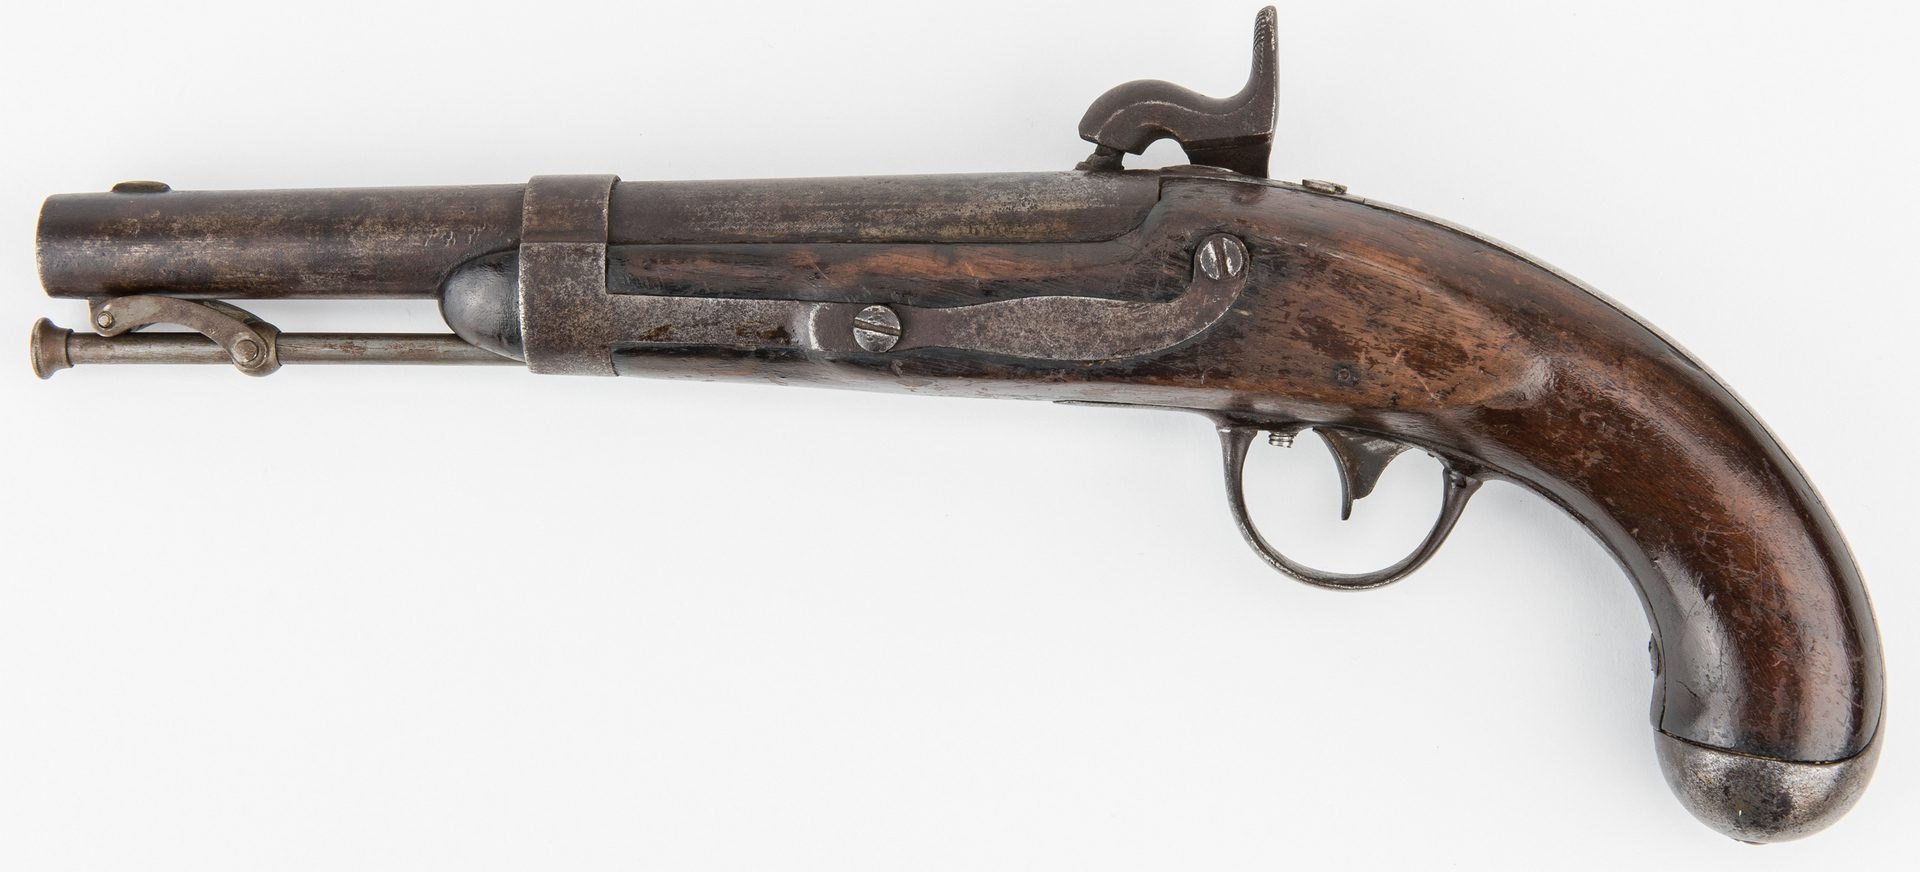 Lot 316: Model 1836 R. Johnson Gov't Contract Pistol, . 54 Caliber